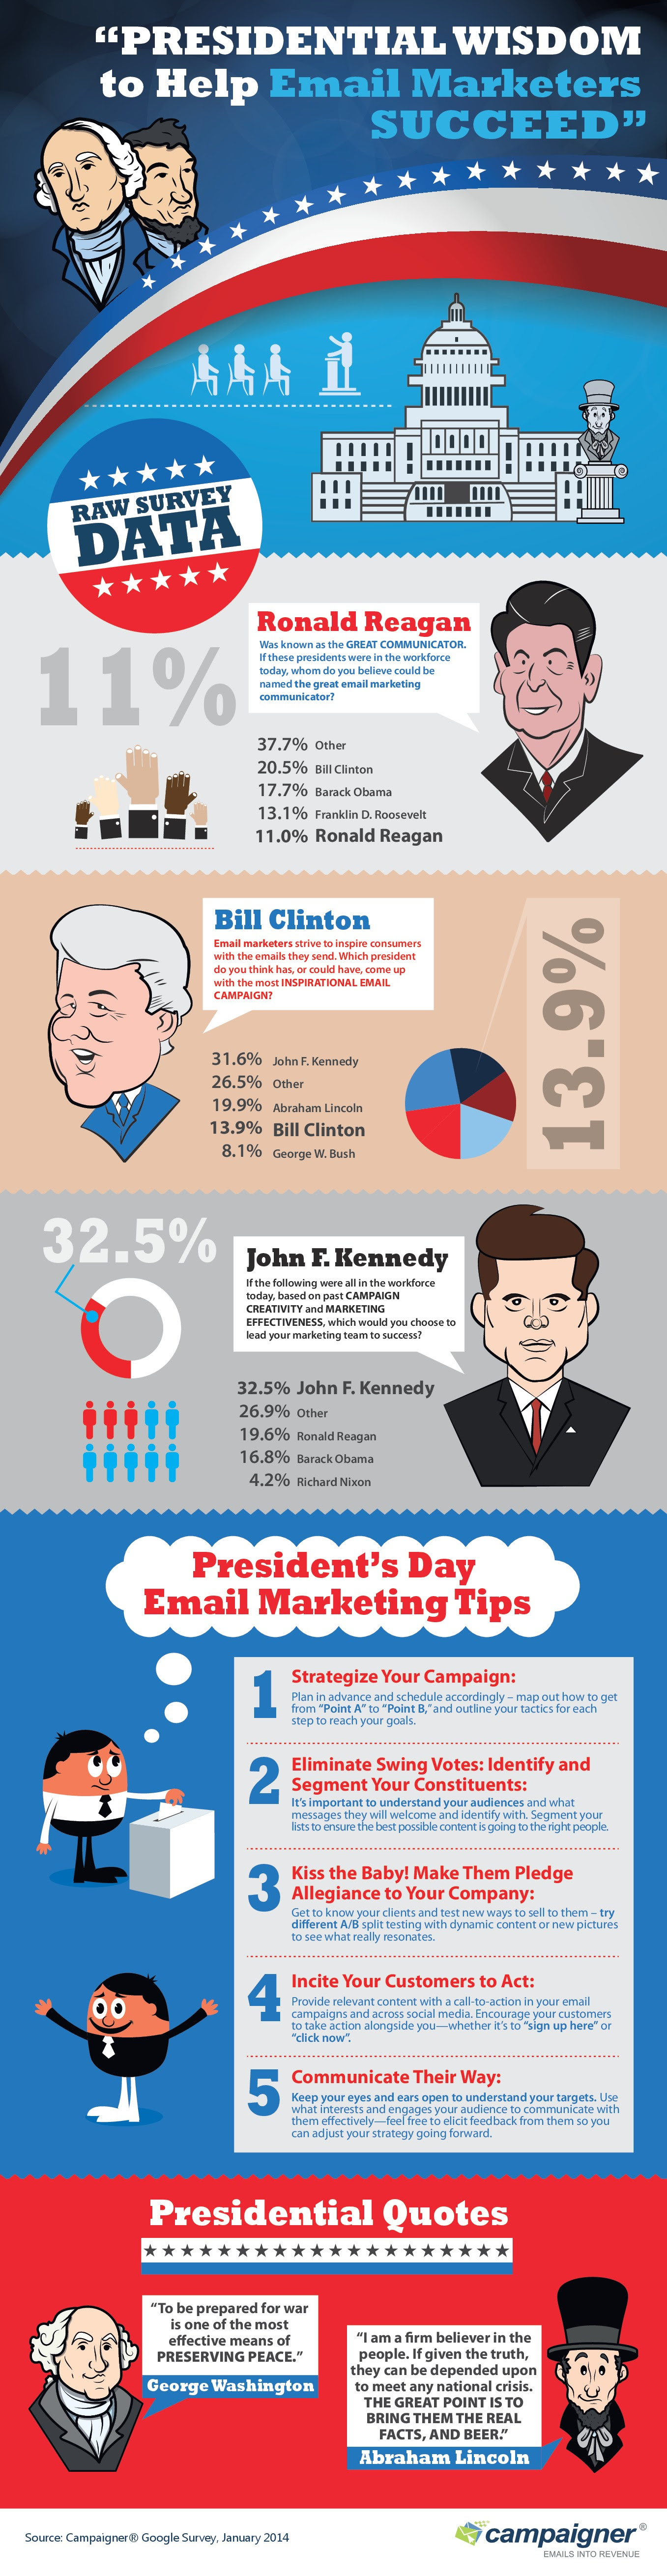 Infographic: Presidential Wisdom to Help Email Marketers Succeed